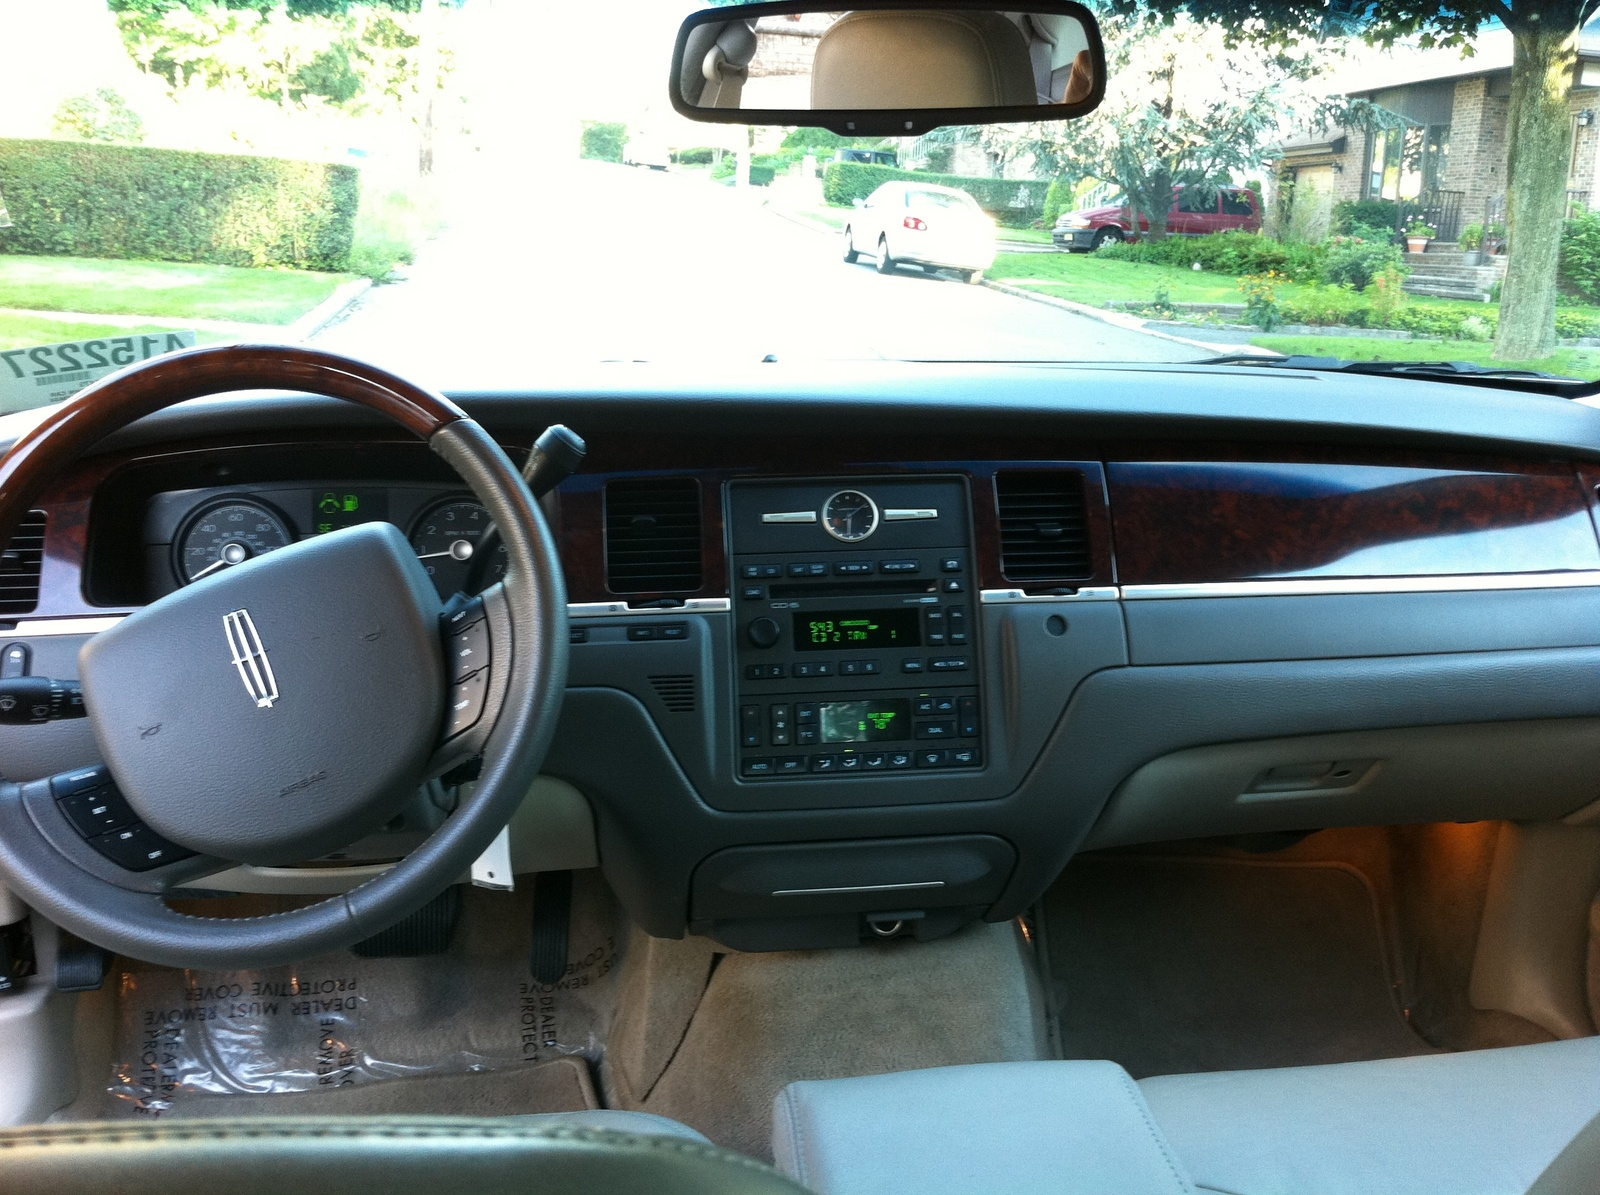 2009 lincoln town car interior pictures cargurus